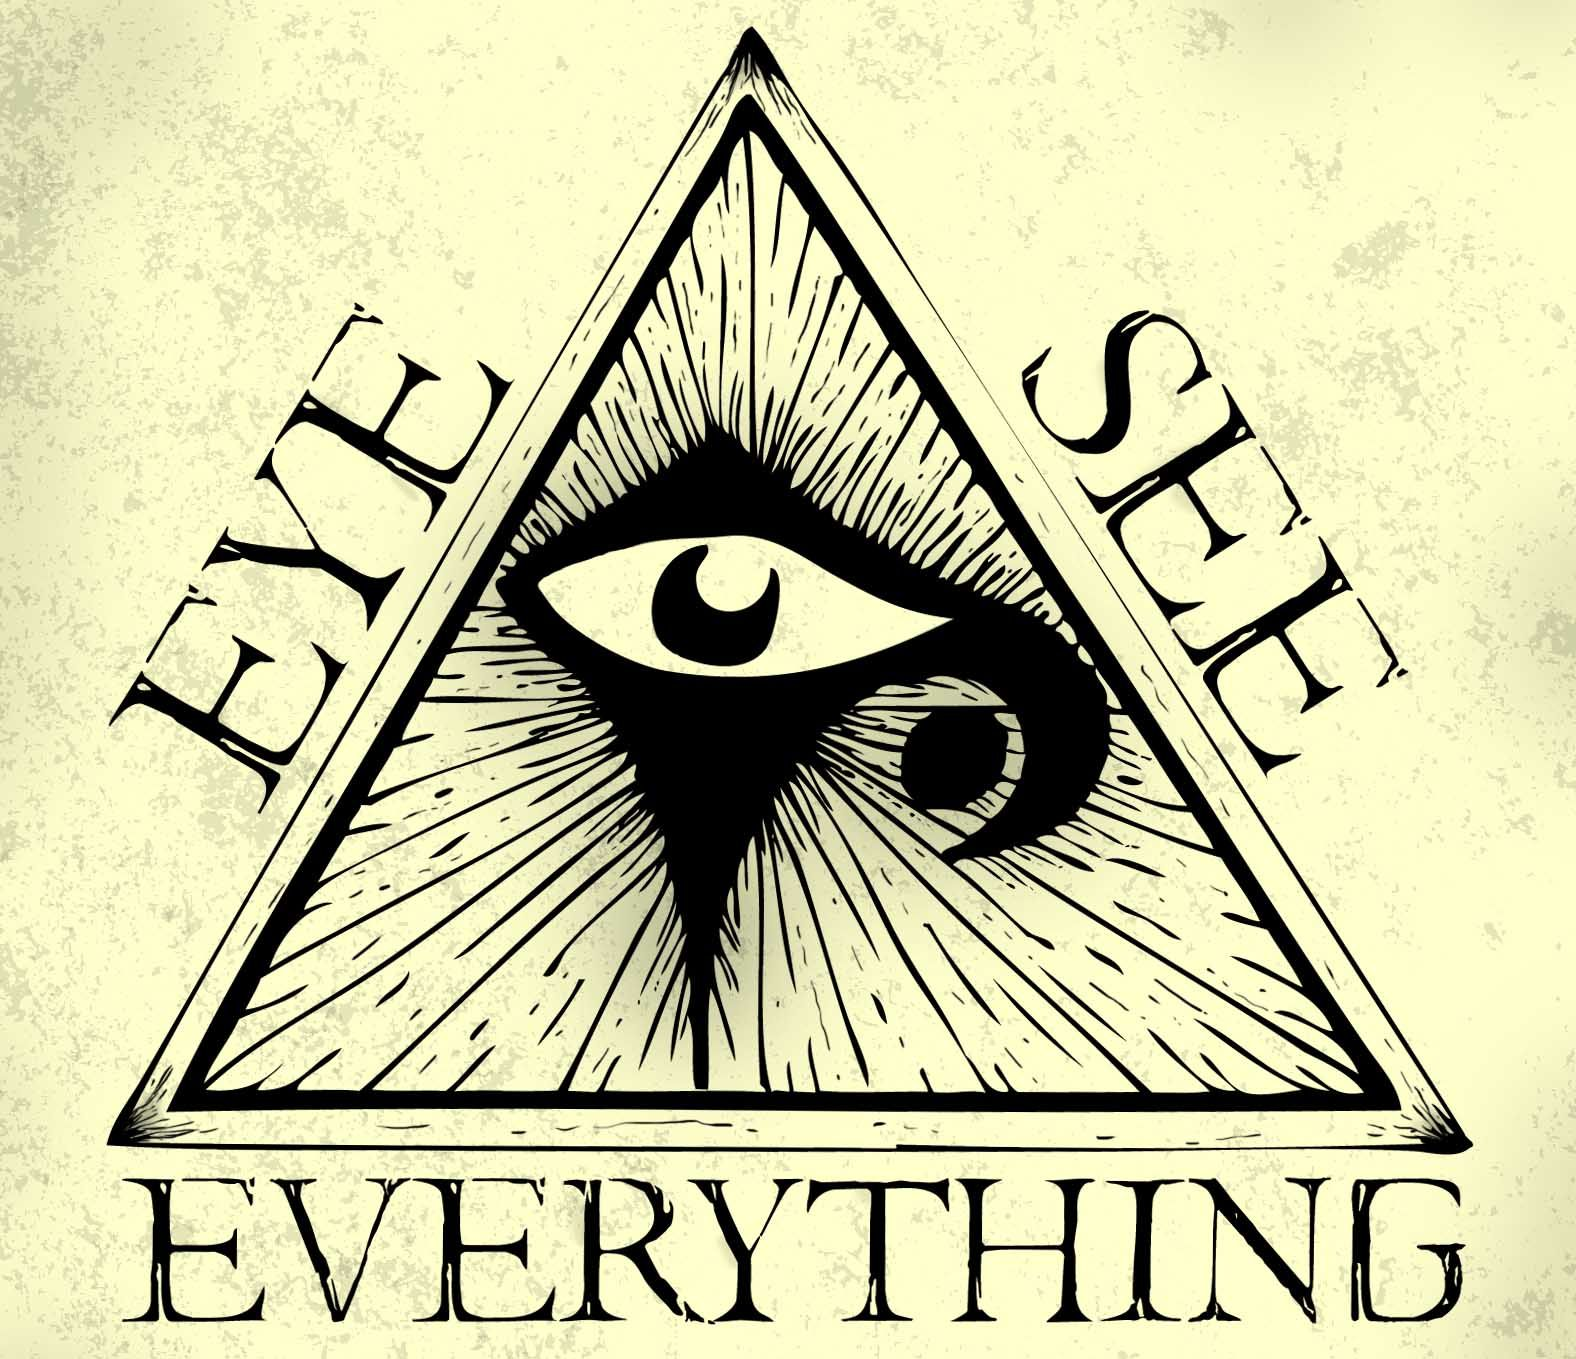 All On The Illuminati: EYE SEE EVERYTHING!